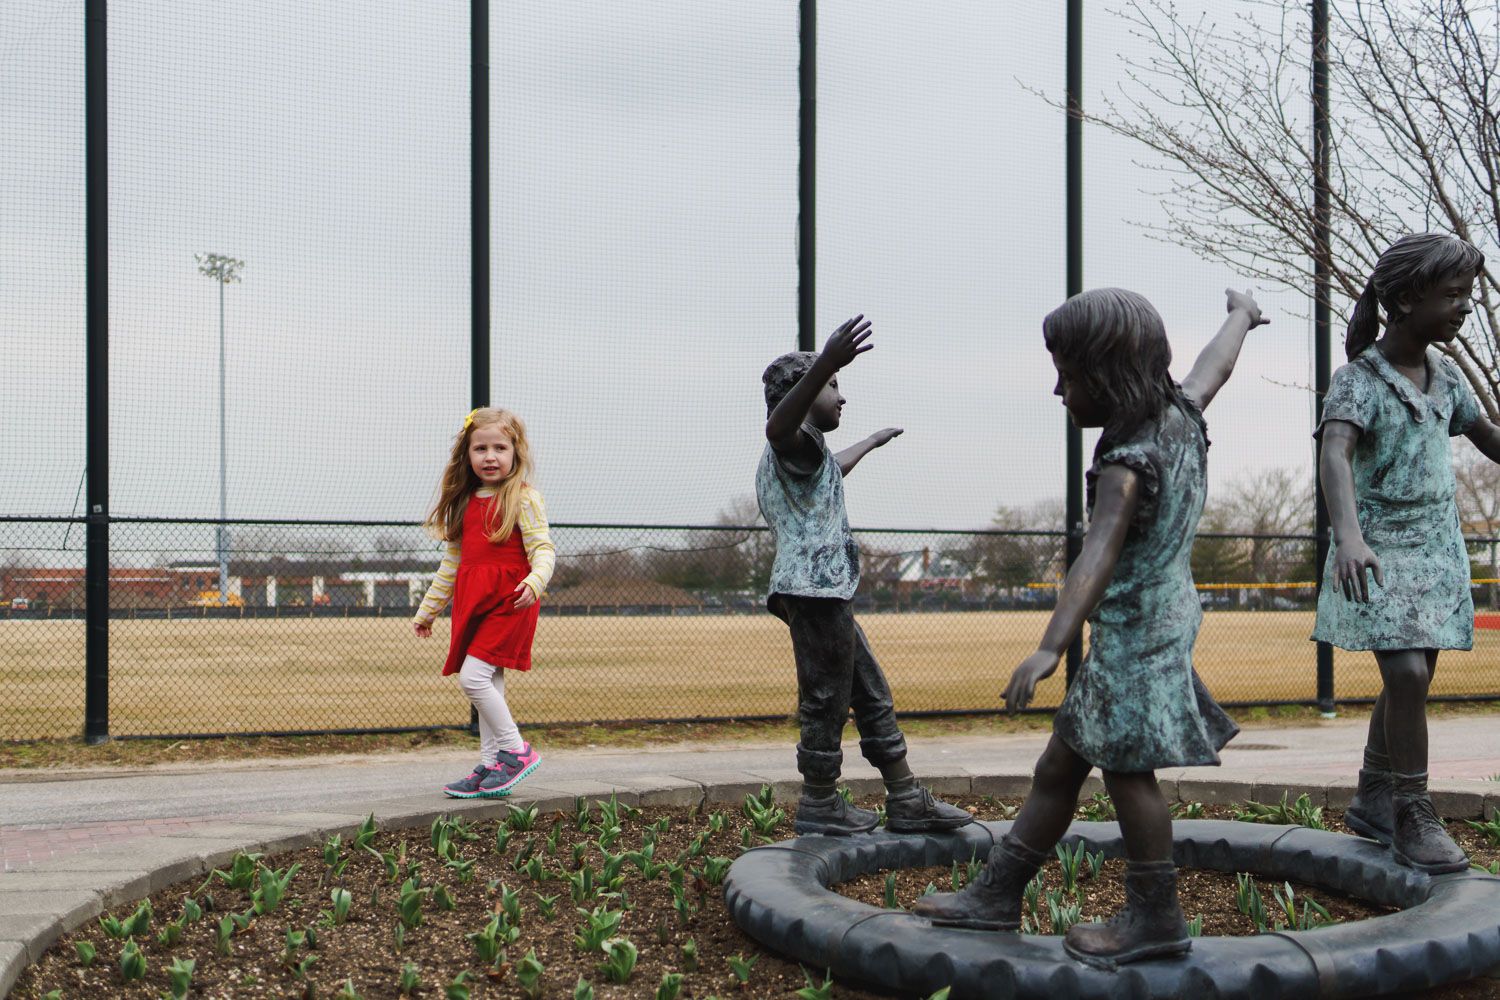 Little girl walks around a statue of three girls at the park.